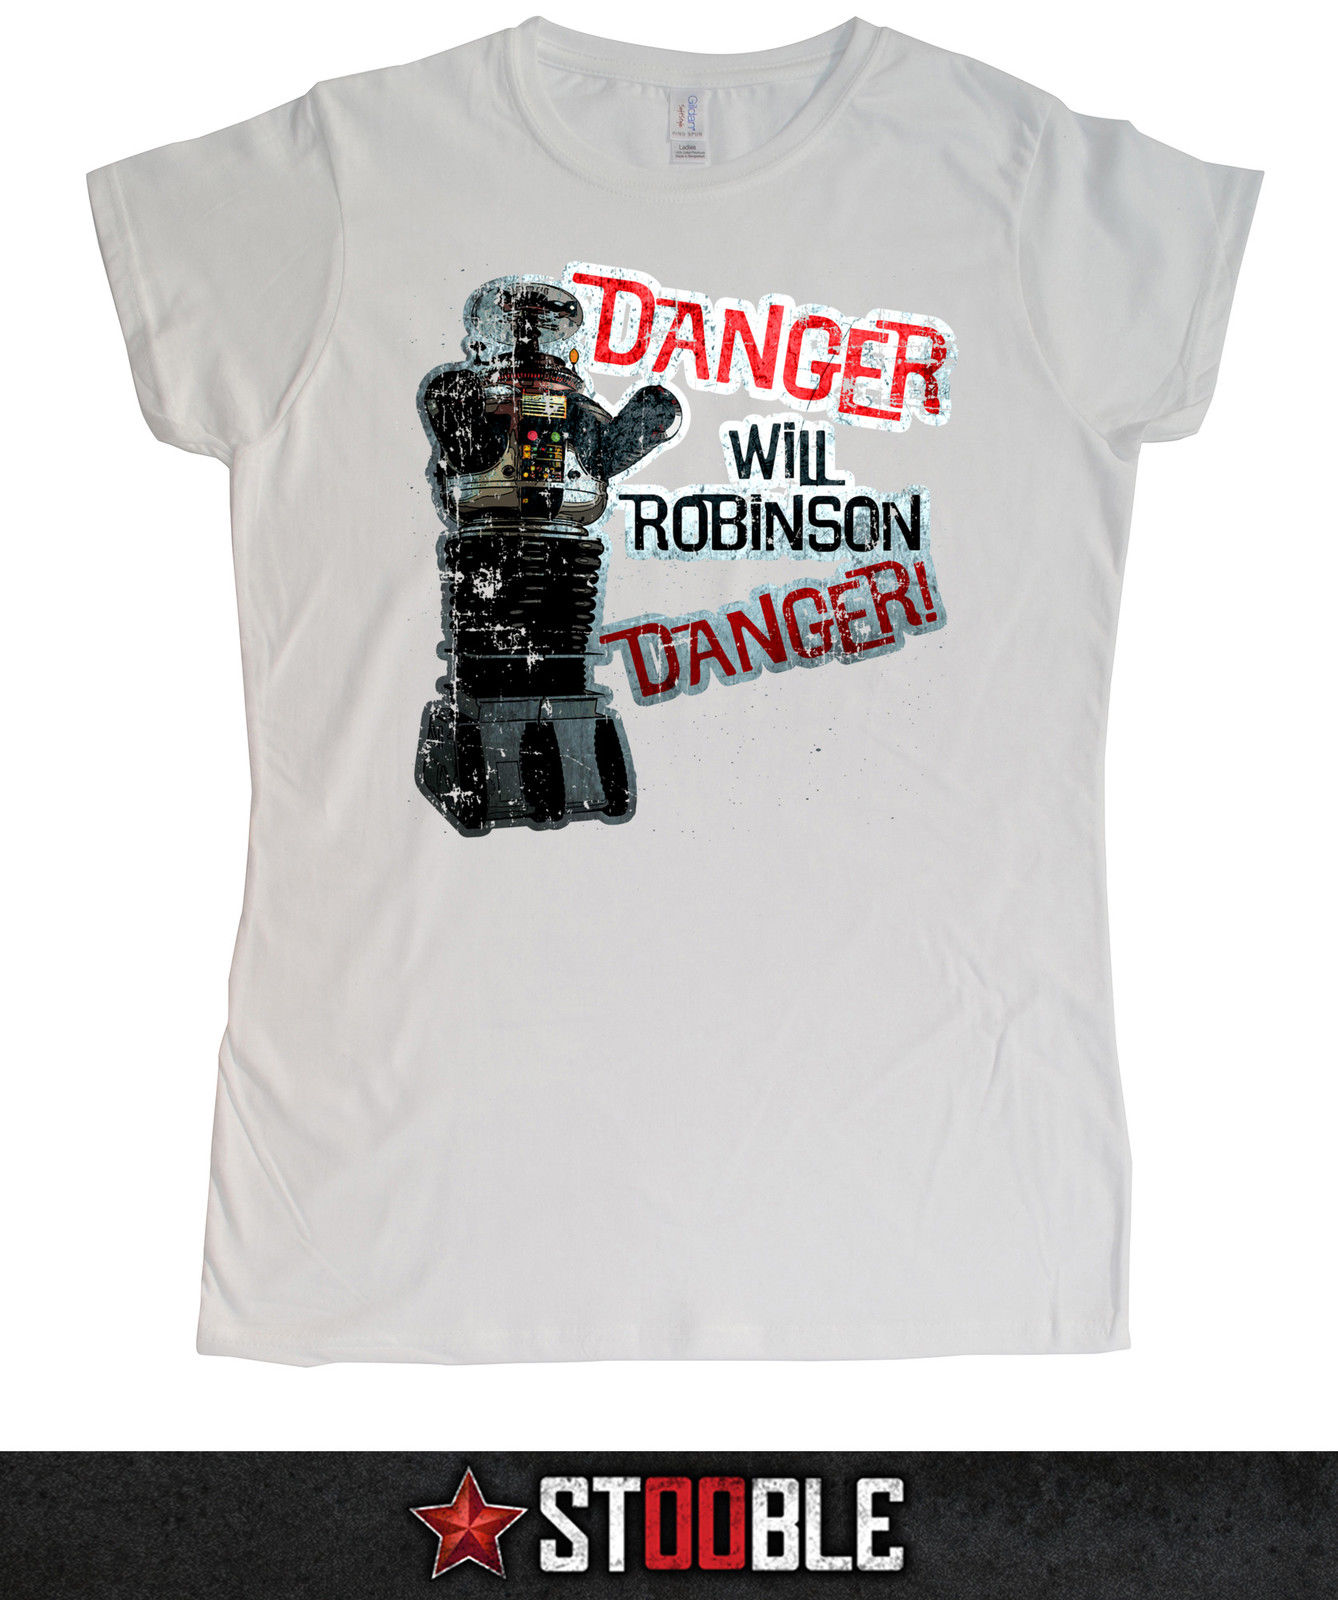 Danger Will Robinson Ladies T-Shirt - Direct from Stockist New T Shirts Funny Tops Tee New Unisex Funny Tops Print T Shirt Men image